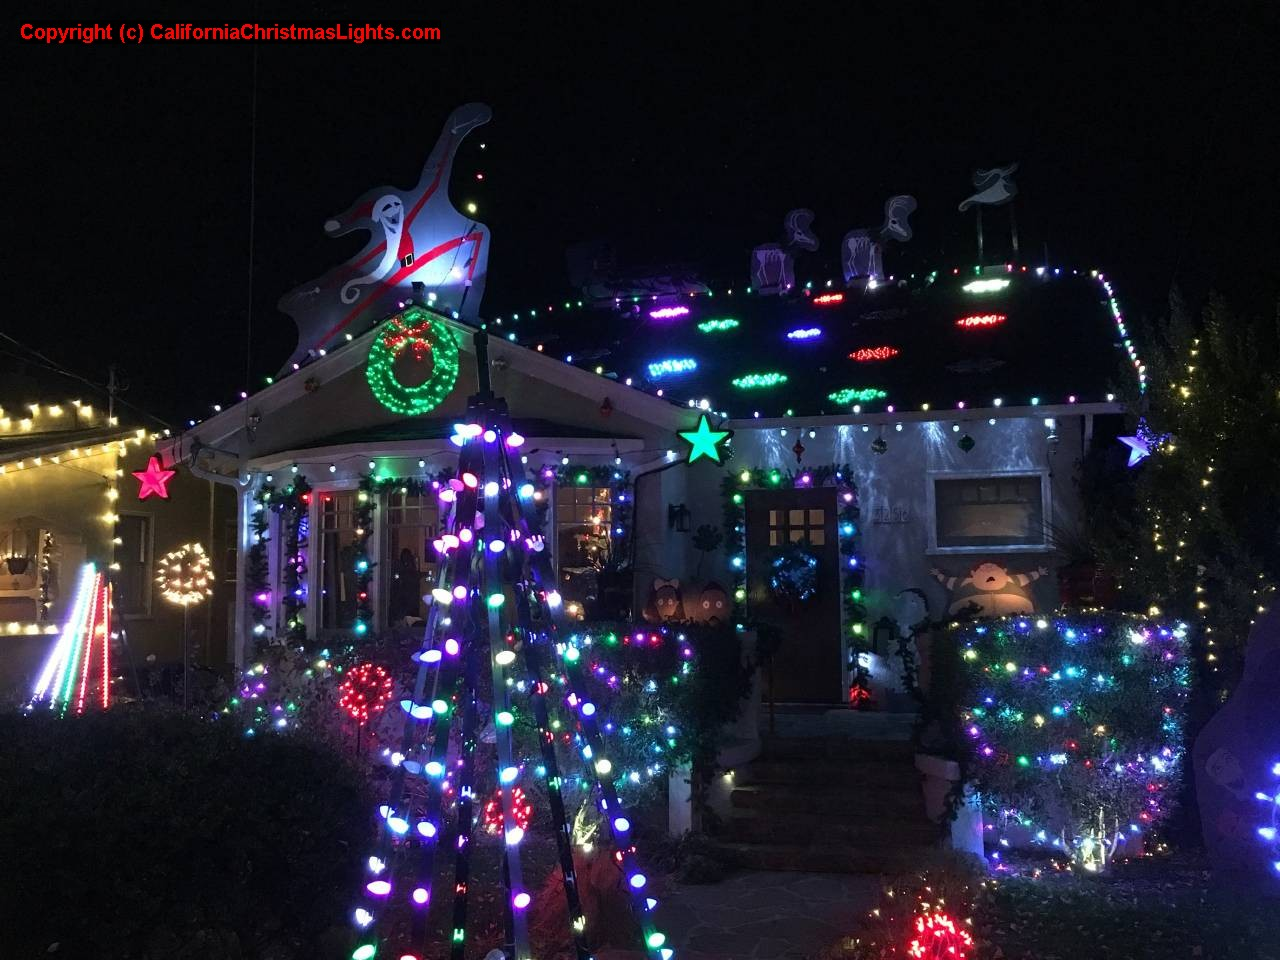 Christmas Lights / Holiday Display at 3256 Thompson Ave, Alameda CA ...